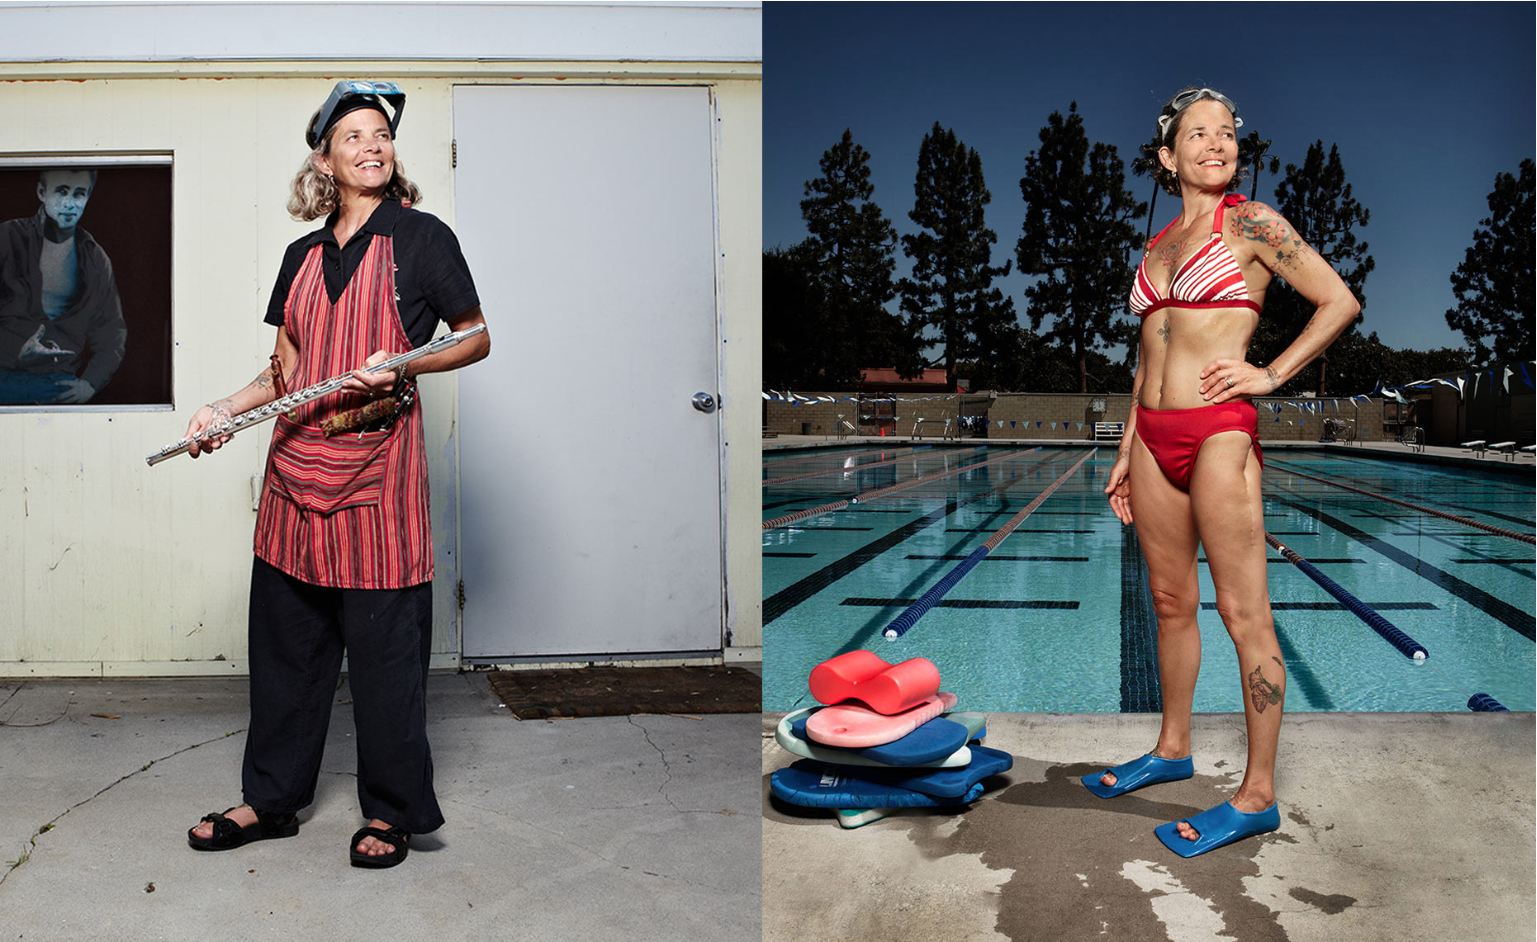 The Secret Life of Swimmers: Photographs by Judy Starkman